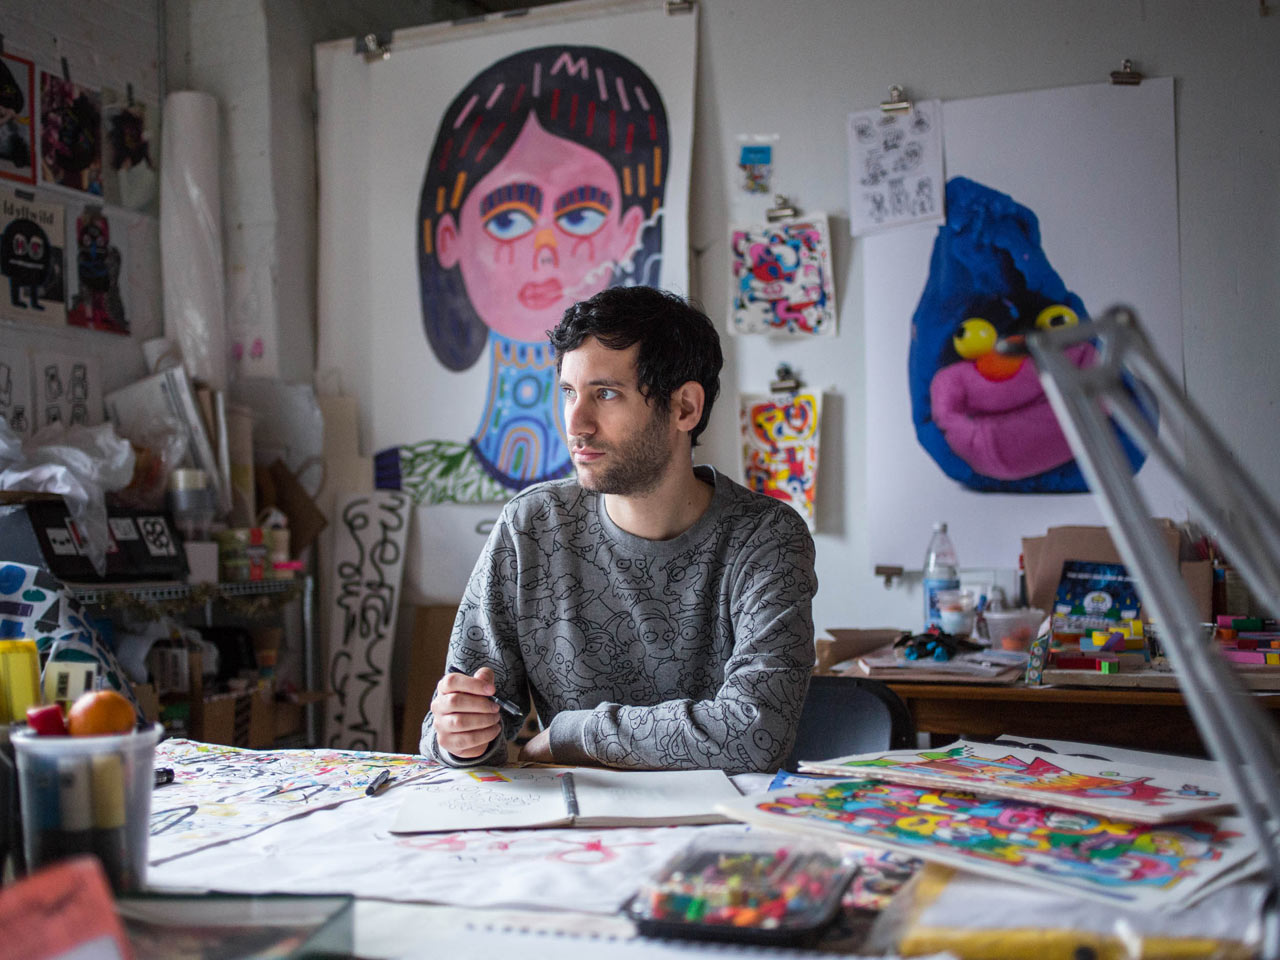 Friday Five with Jon Burgerman